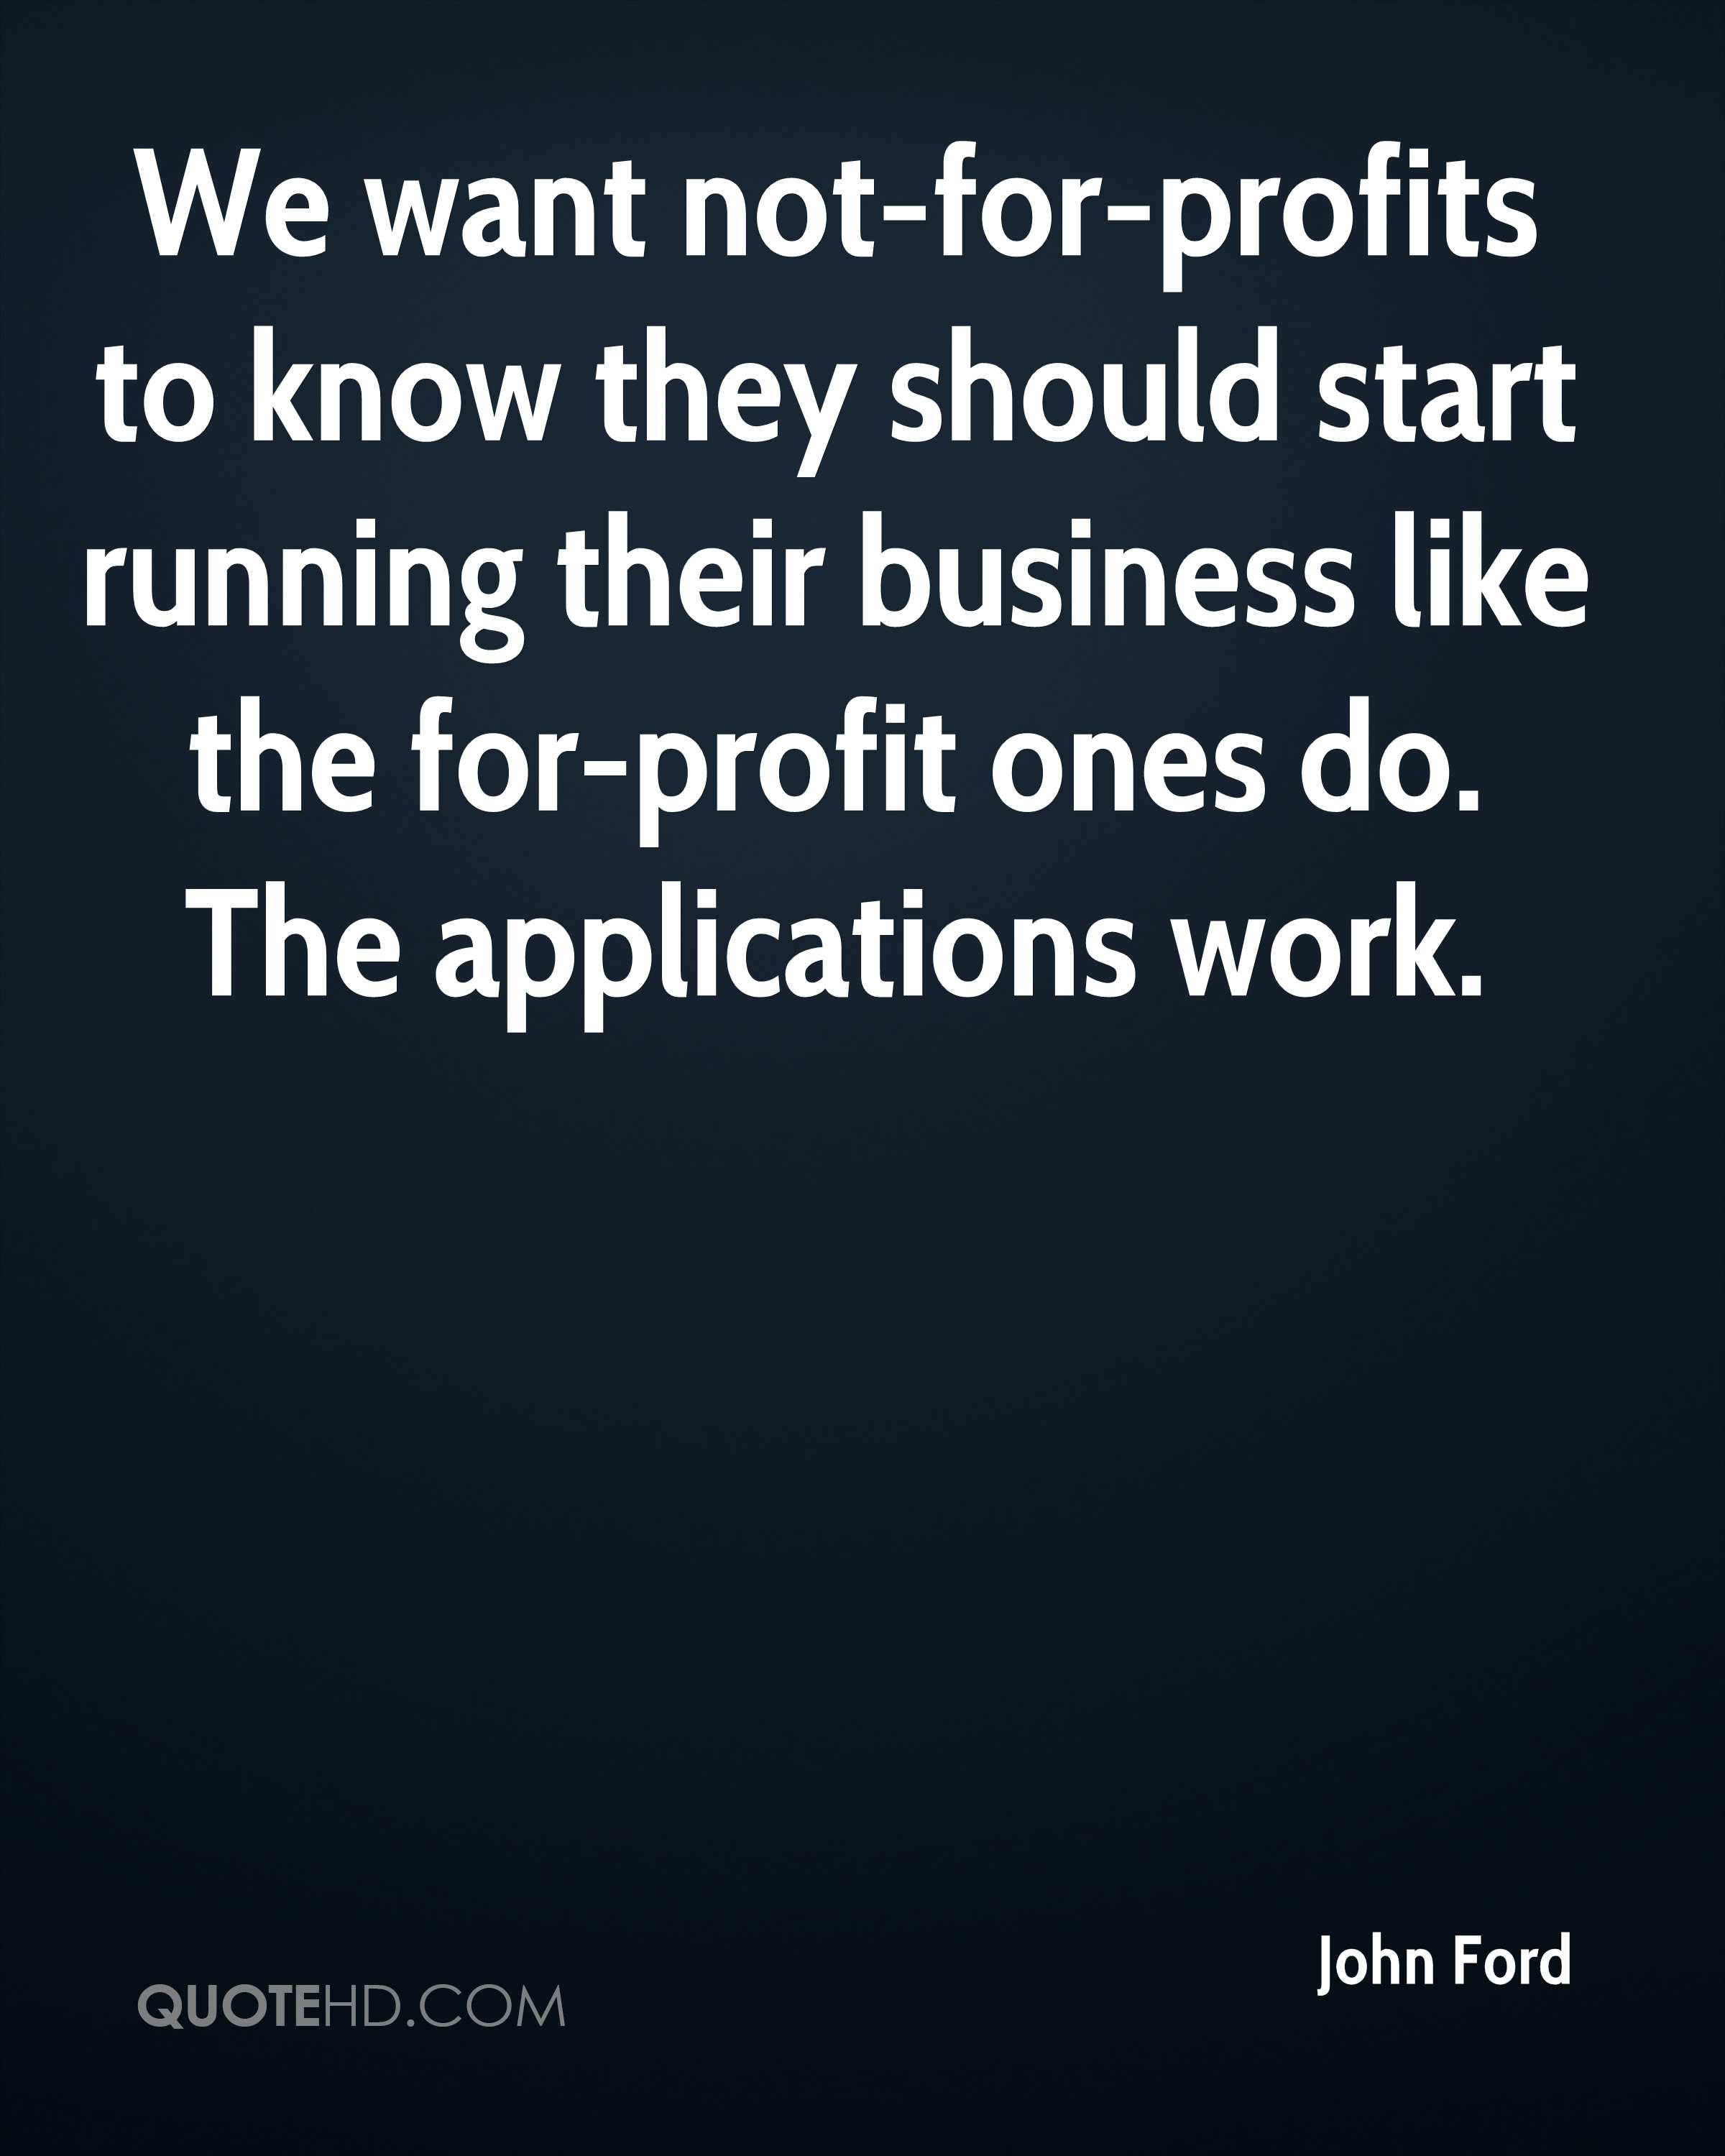 We want not-for-profits to know they should start running their business like the for-profit ones do. The applications work.